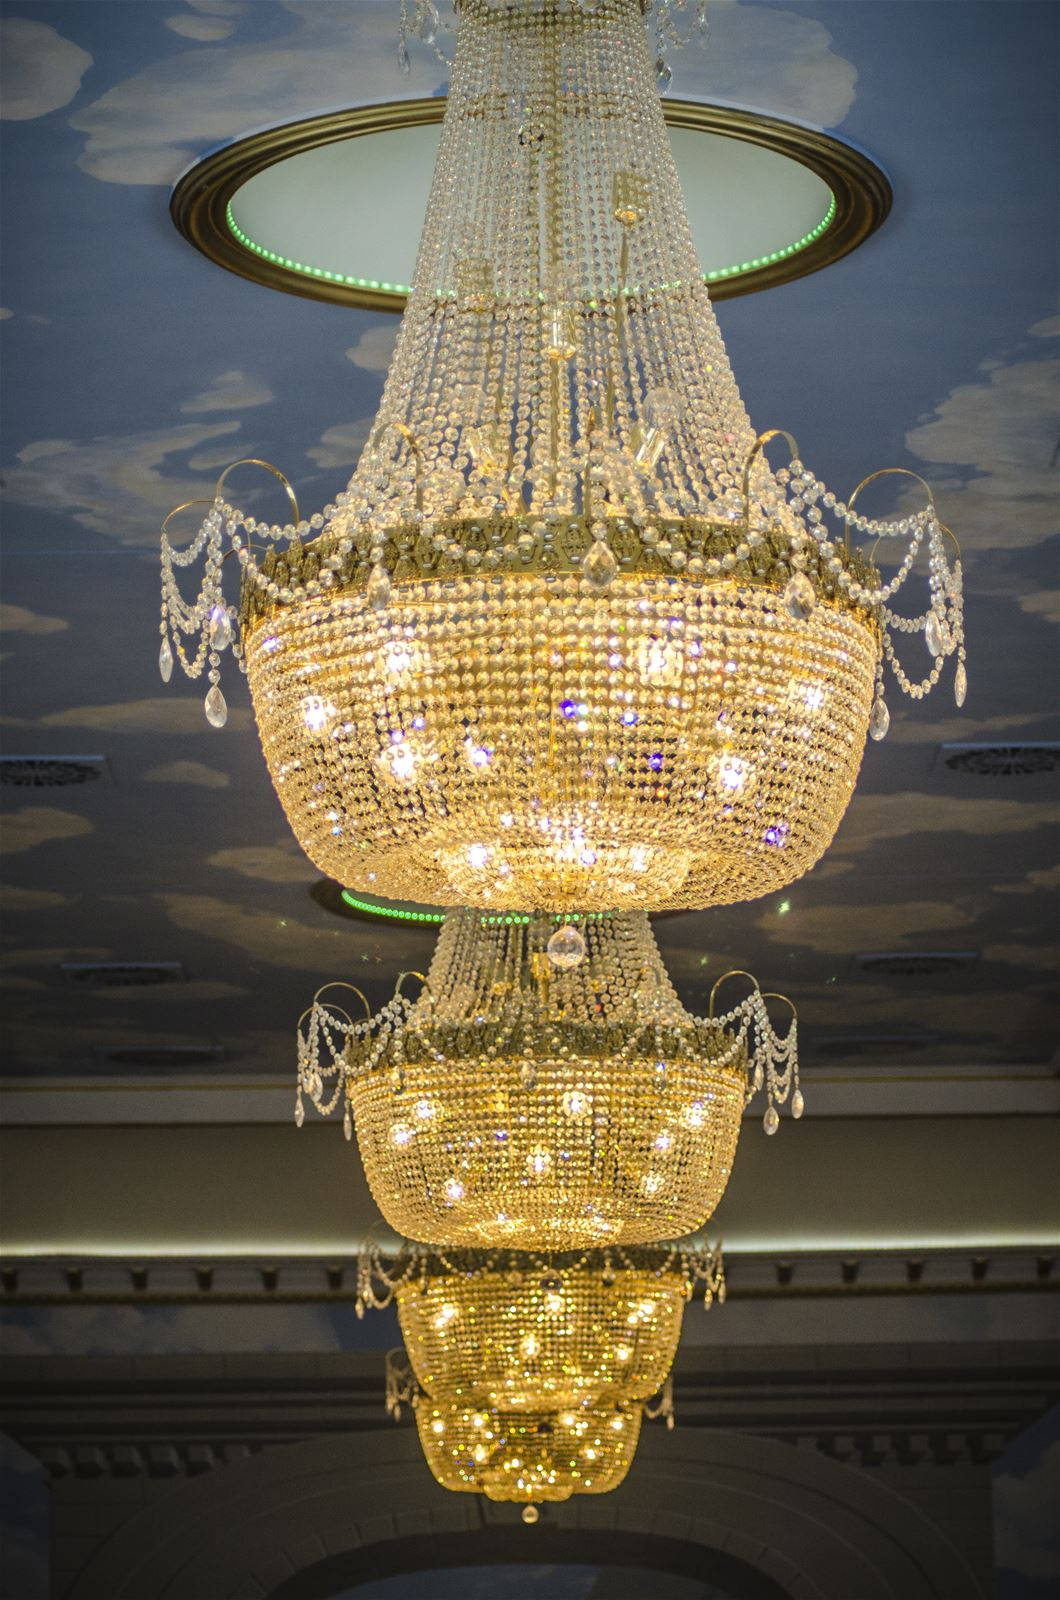 Preciosa_Lighting_Hotel_Kiston_Kistowo_Poland_Interior_traditional style_berkana usa_ballroom_